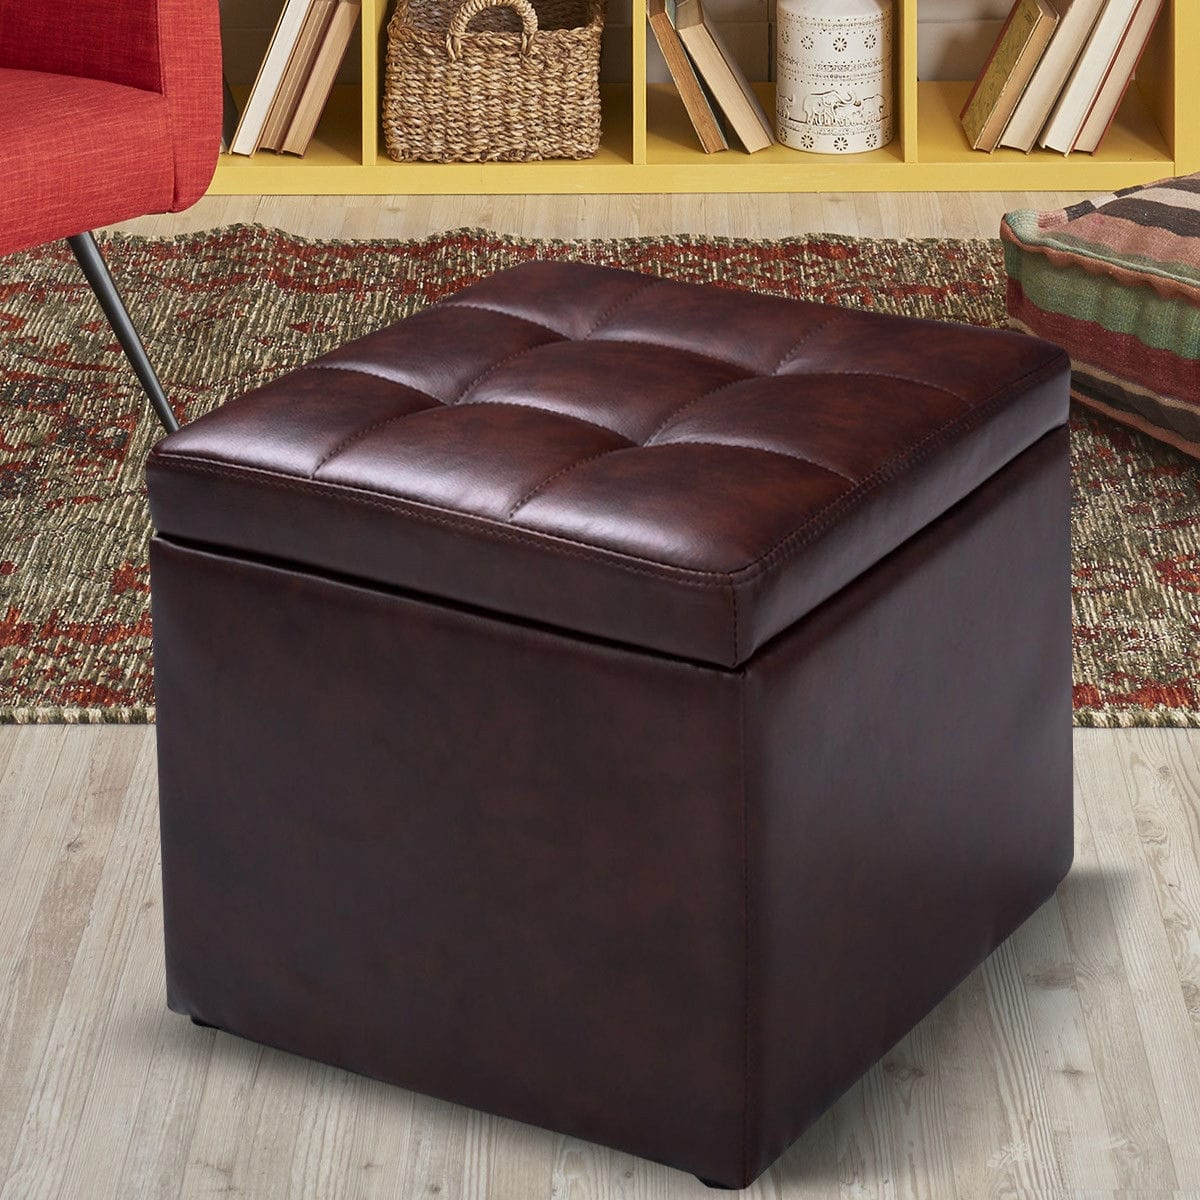 Awe Inspiring Details About Faux Leather Cube Ottoman Pouf Home Storage Box Footrest Seat Coffee Table Brown Pabps2019 Chair Design Images Pabps2019Com